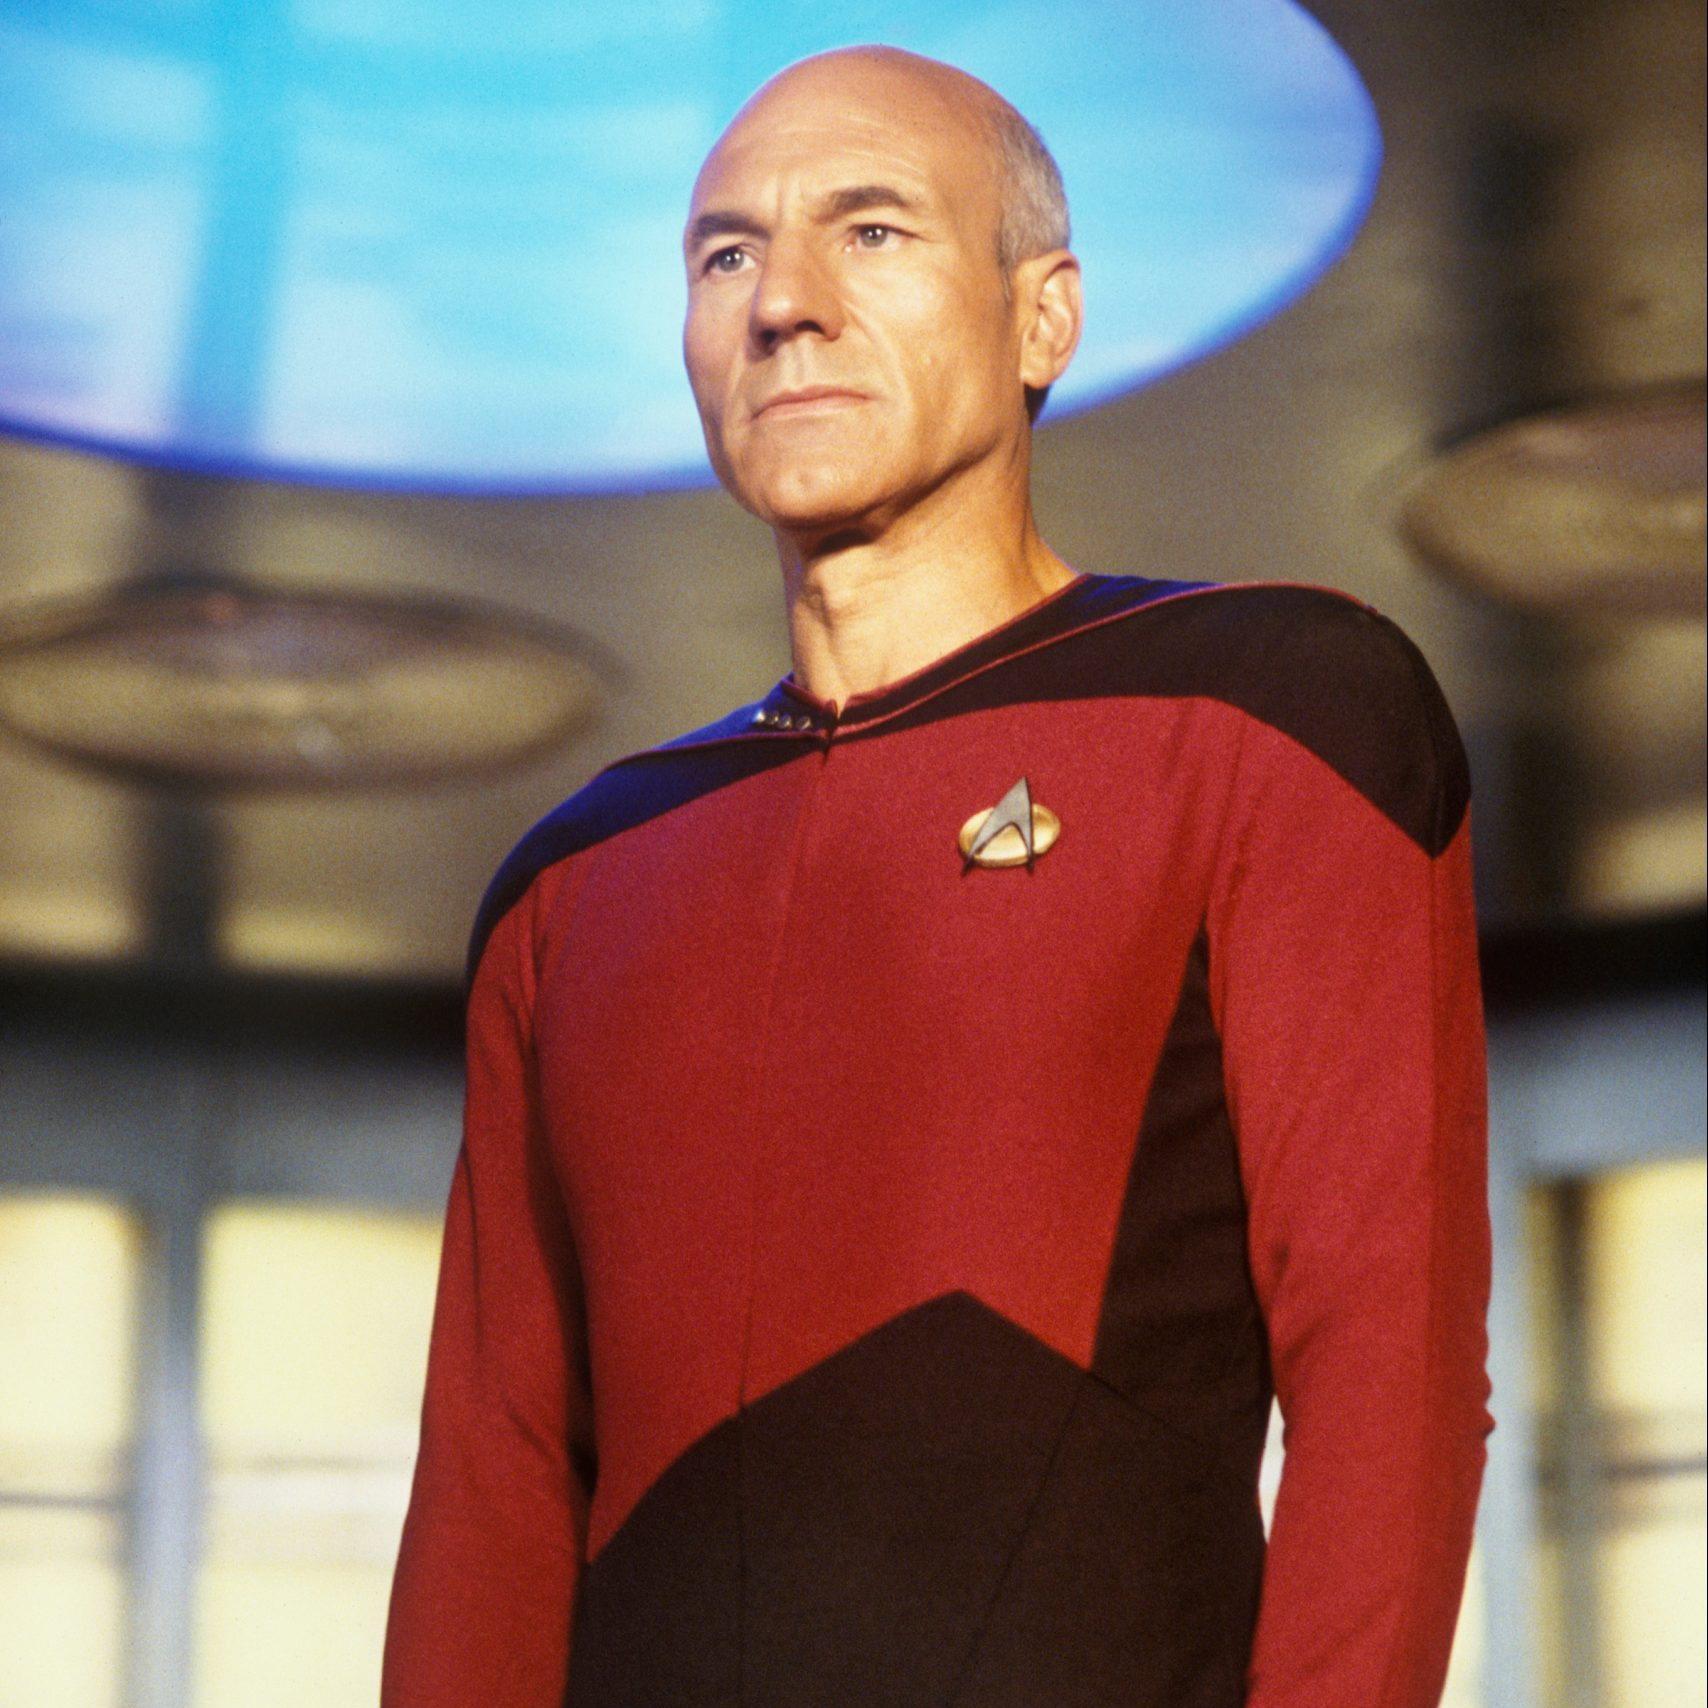 1 70 scaled e1615885435448 30 Intergalactic Facts About Star Trek: The Next Generation